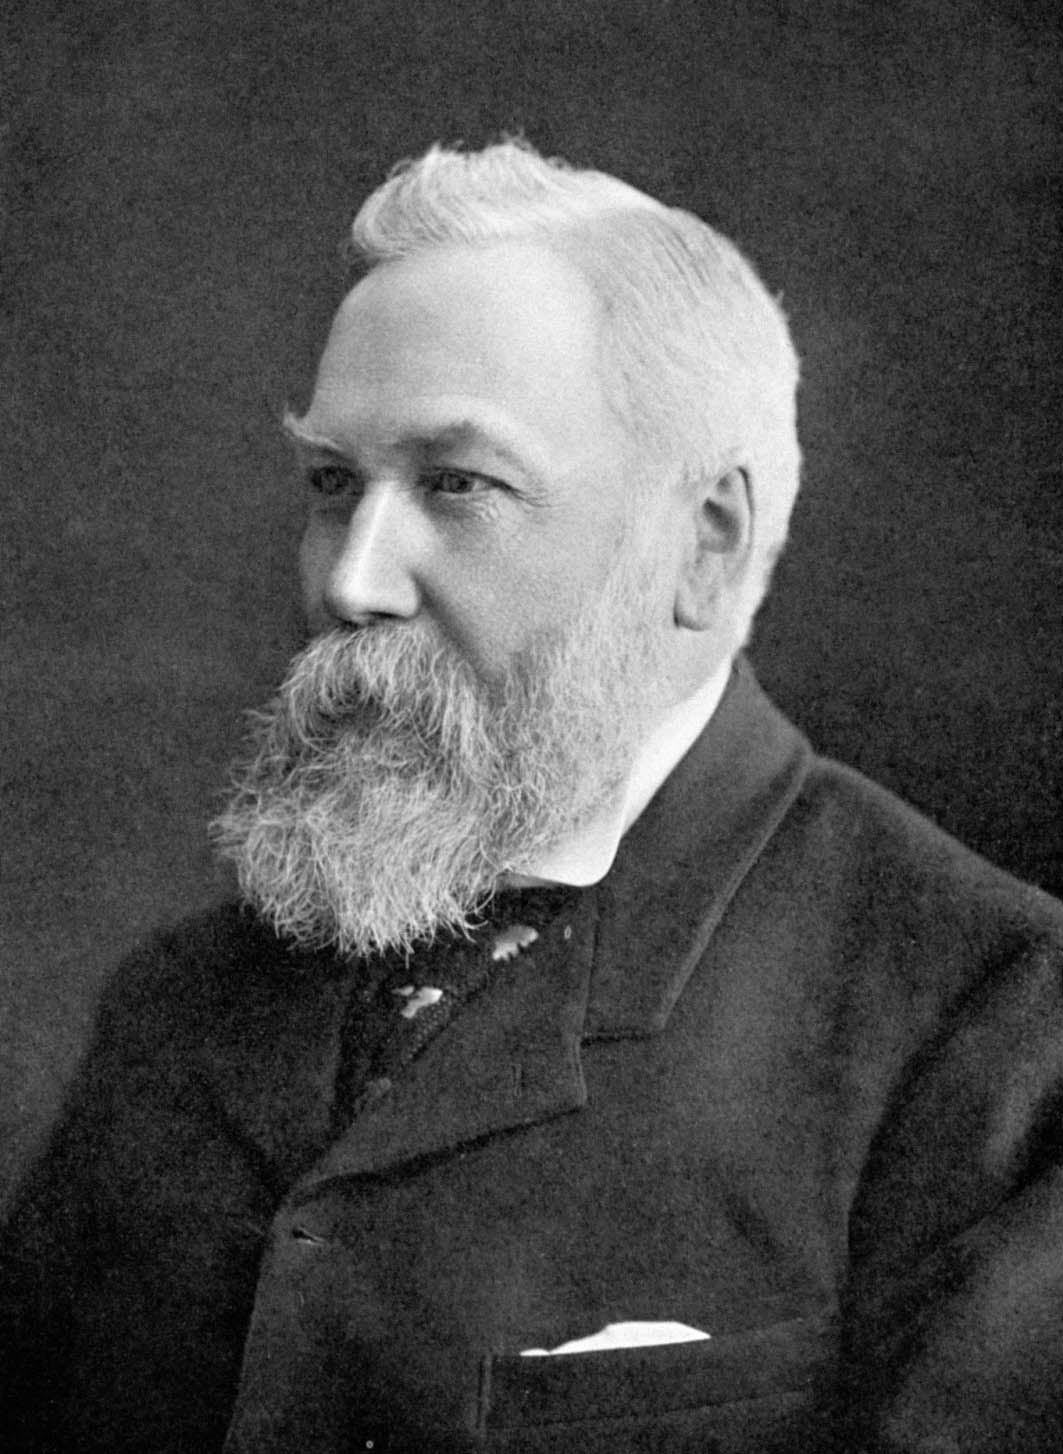 A head and shoulders view of an elderly man with white hair and a large, bushy beard. He is wearing a dark jacket and tie and a white shirt